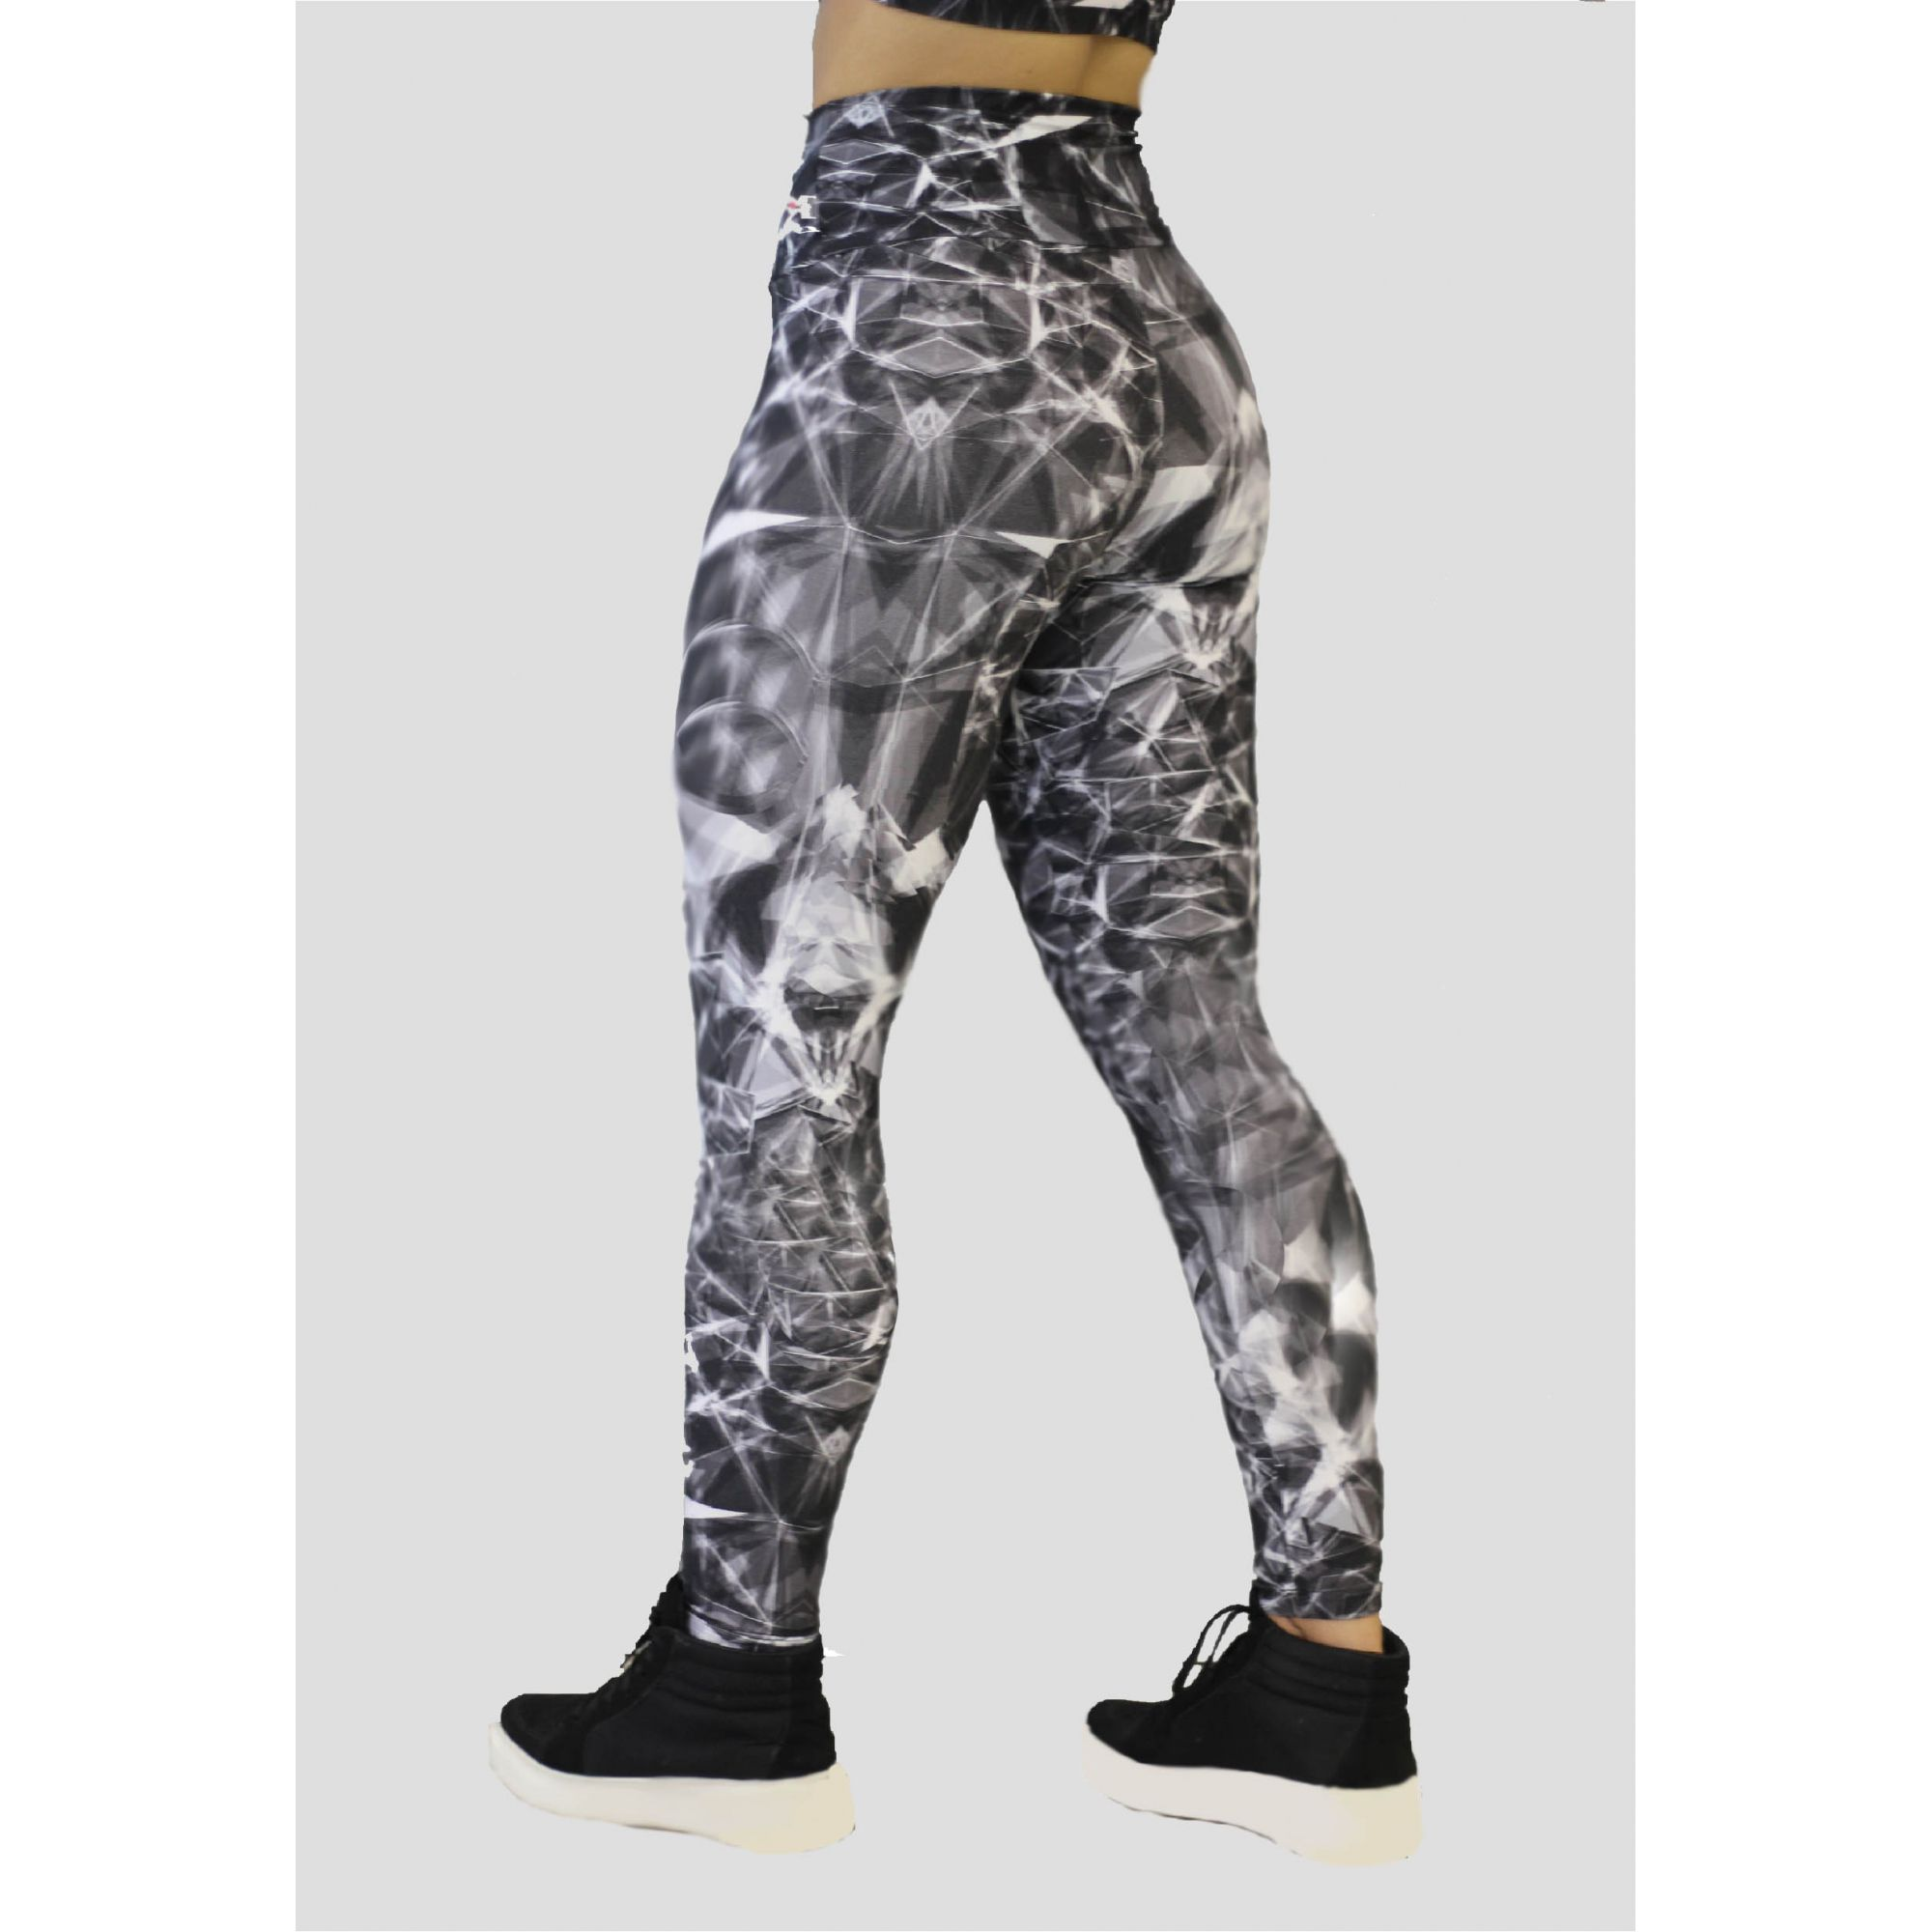 Legging Digital